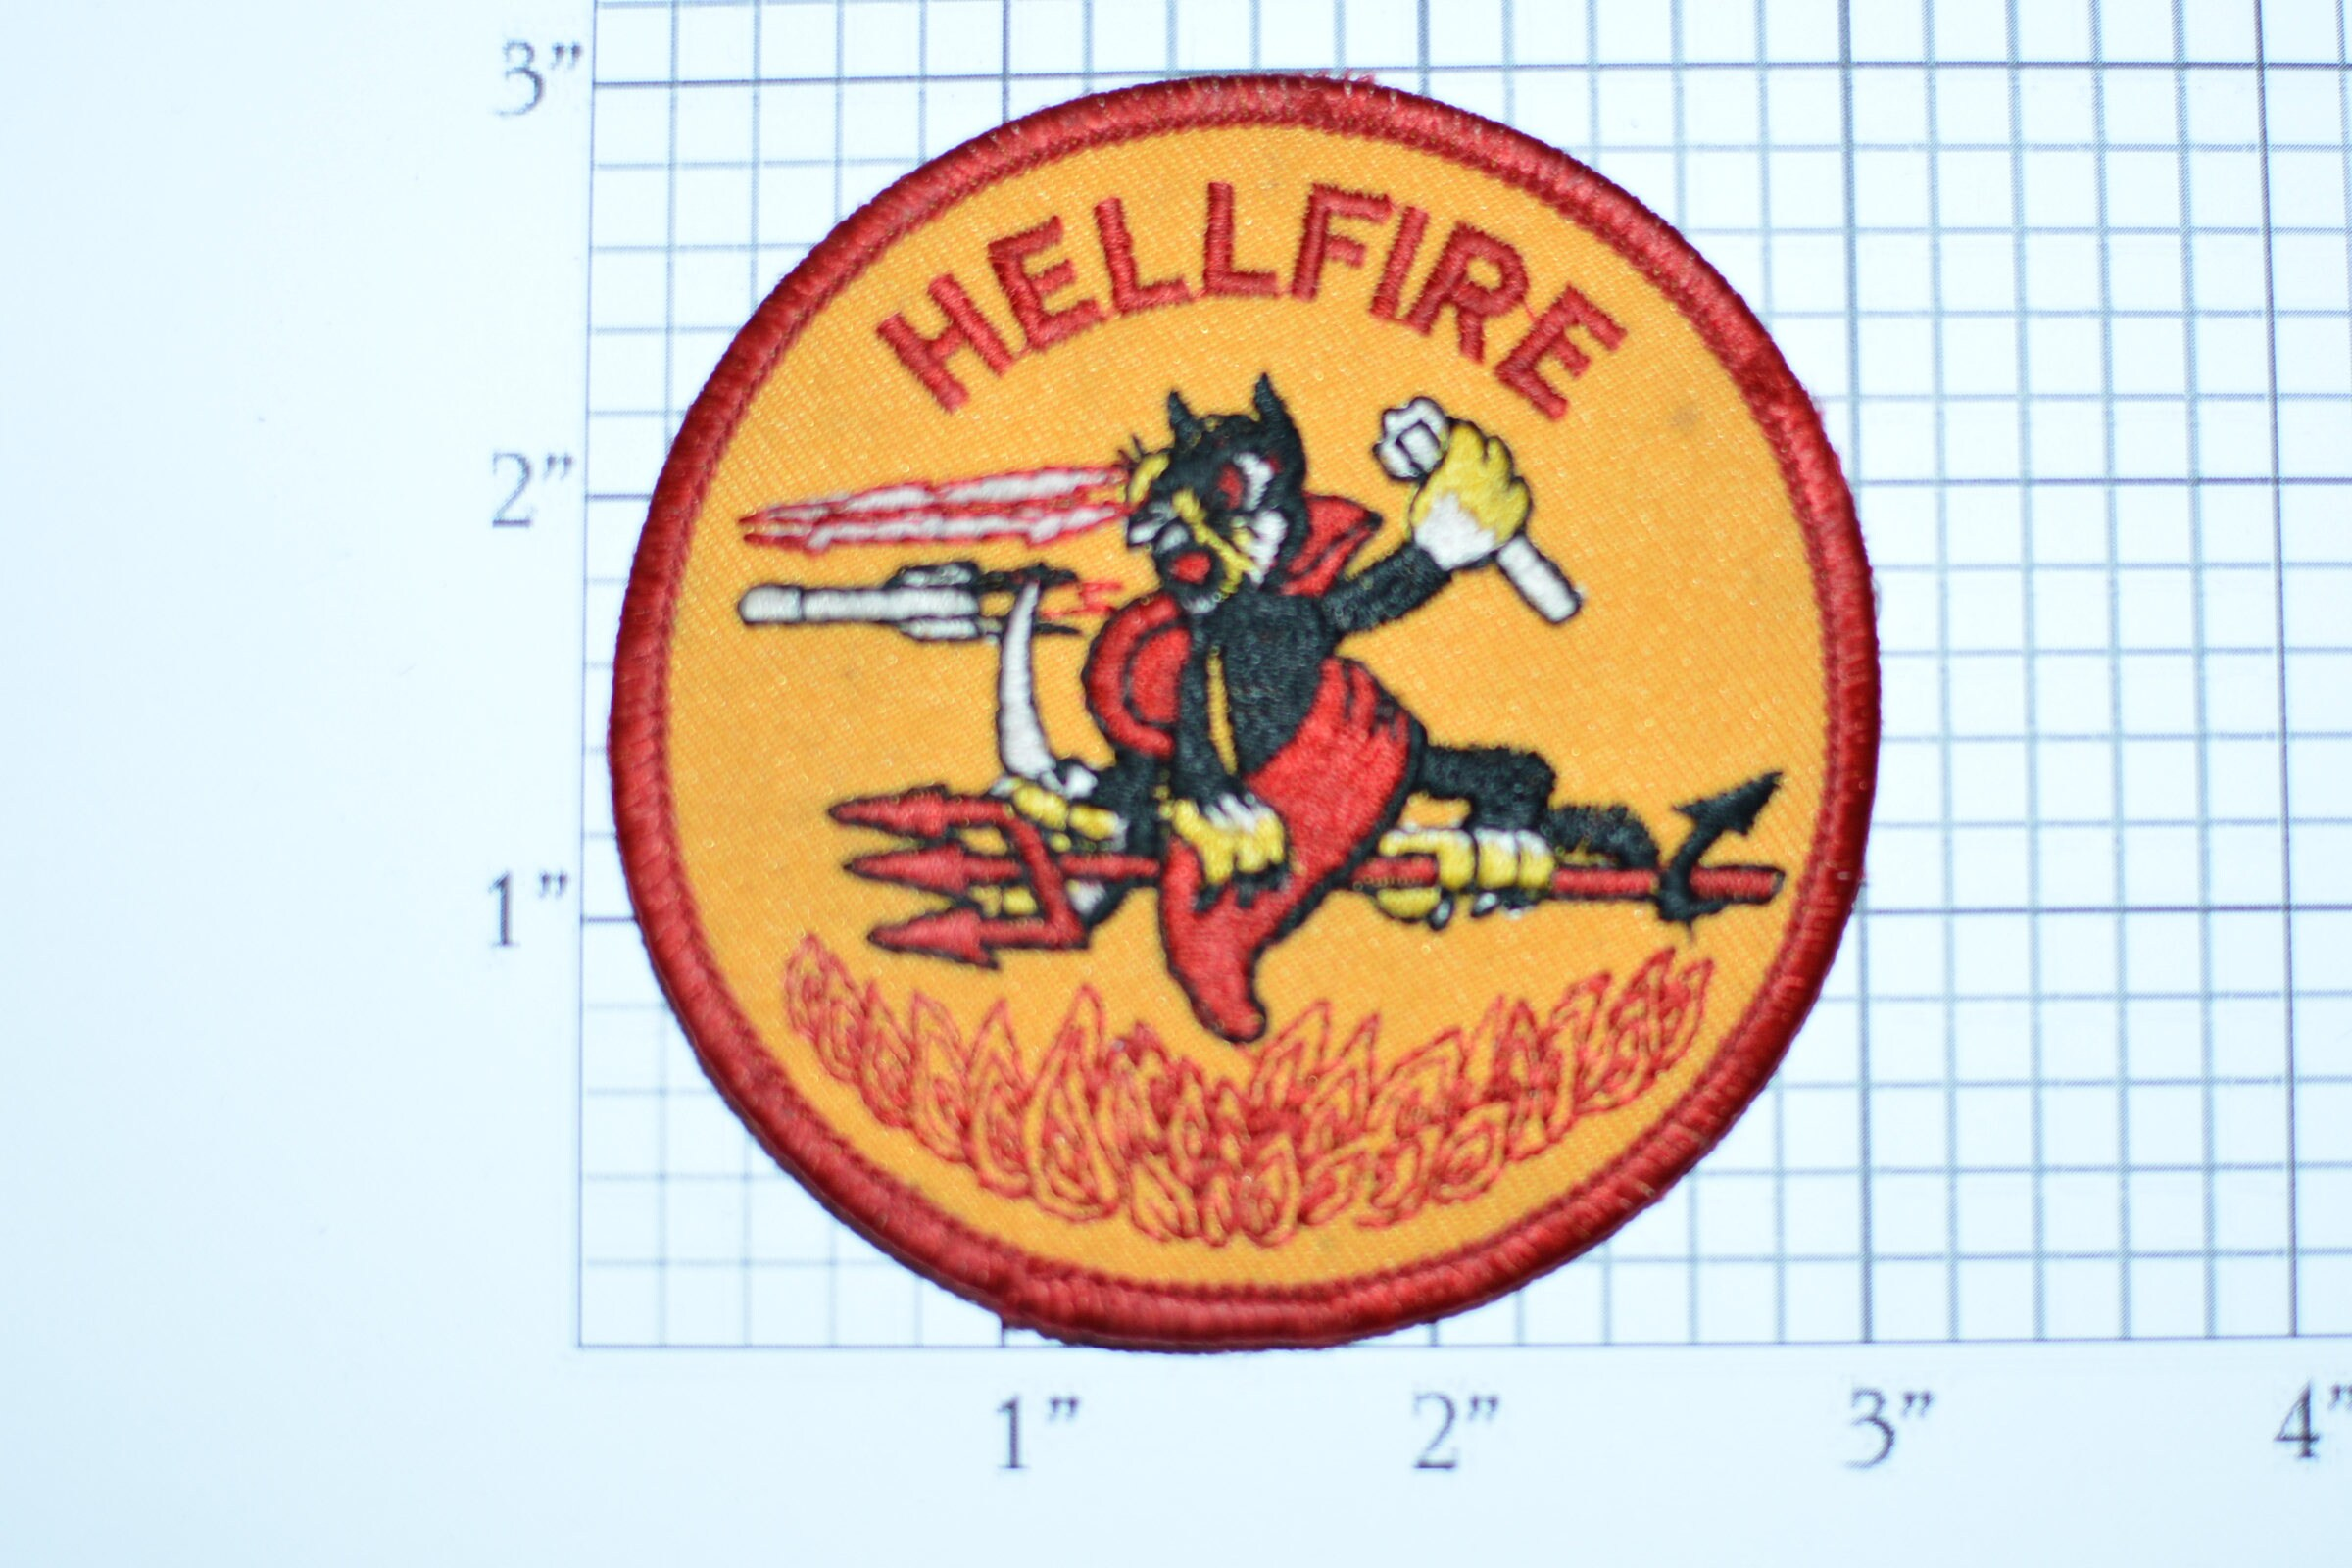 US Marine Corps UMSC Hellfire Missile ASM Fire and Forget